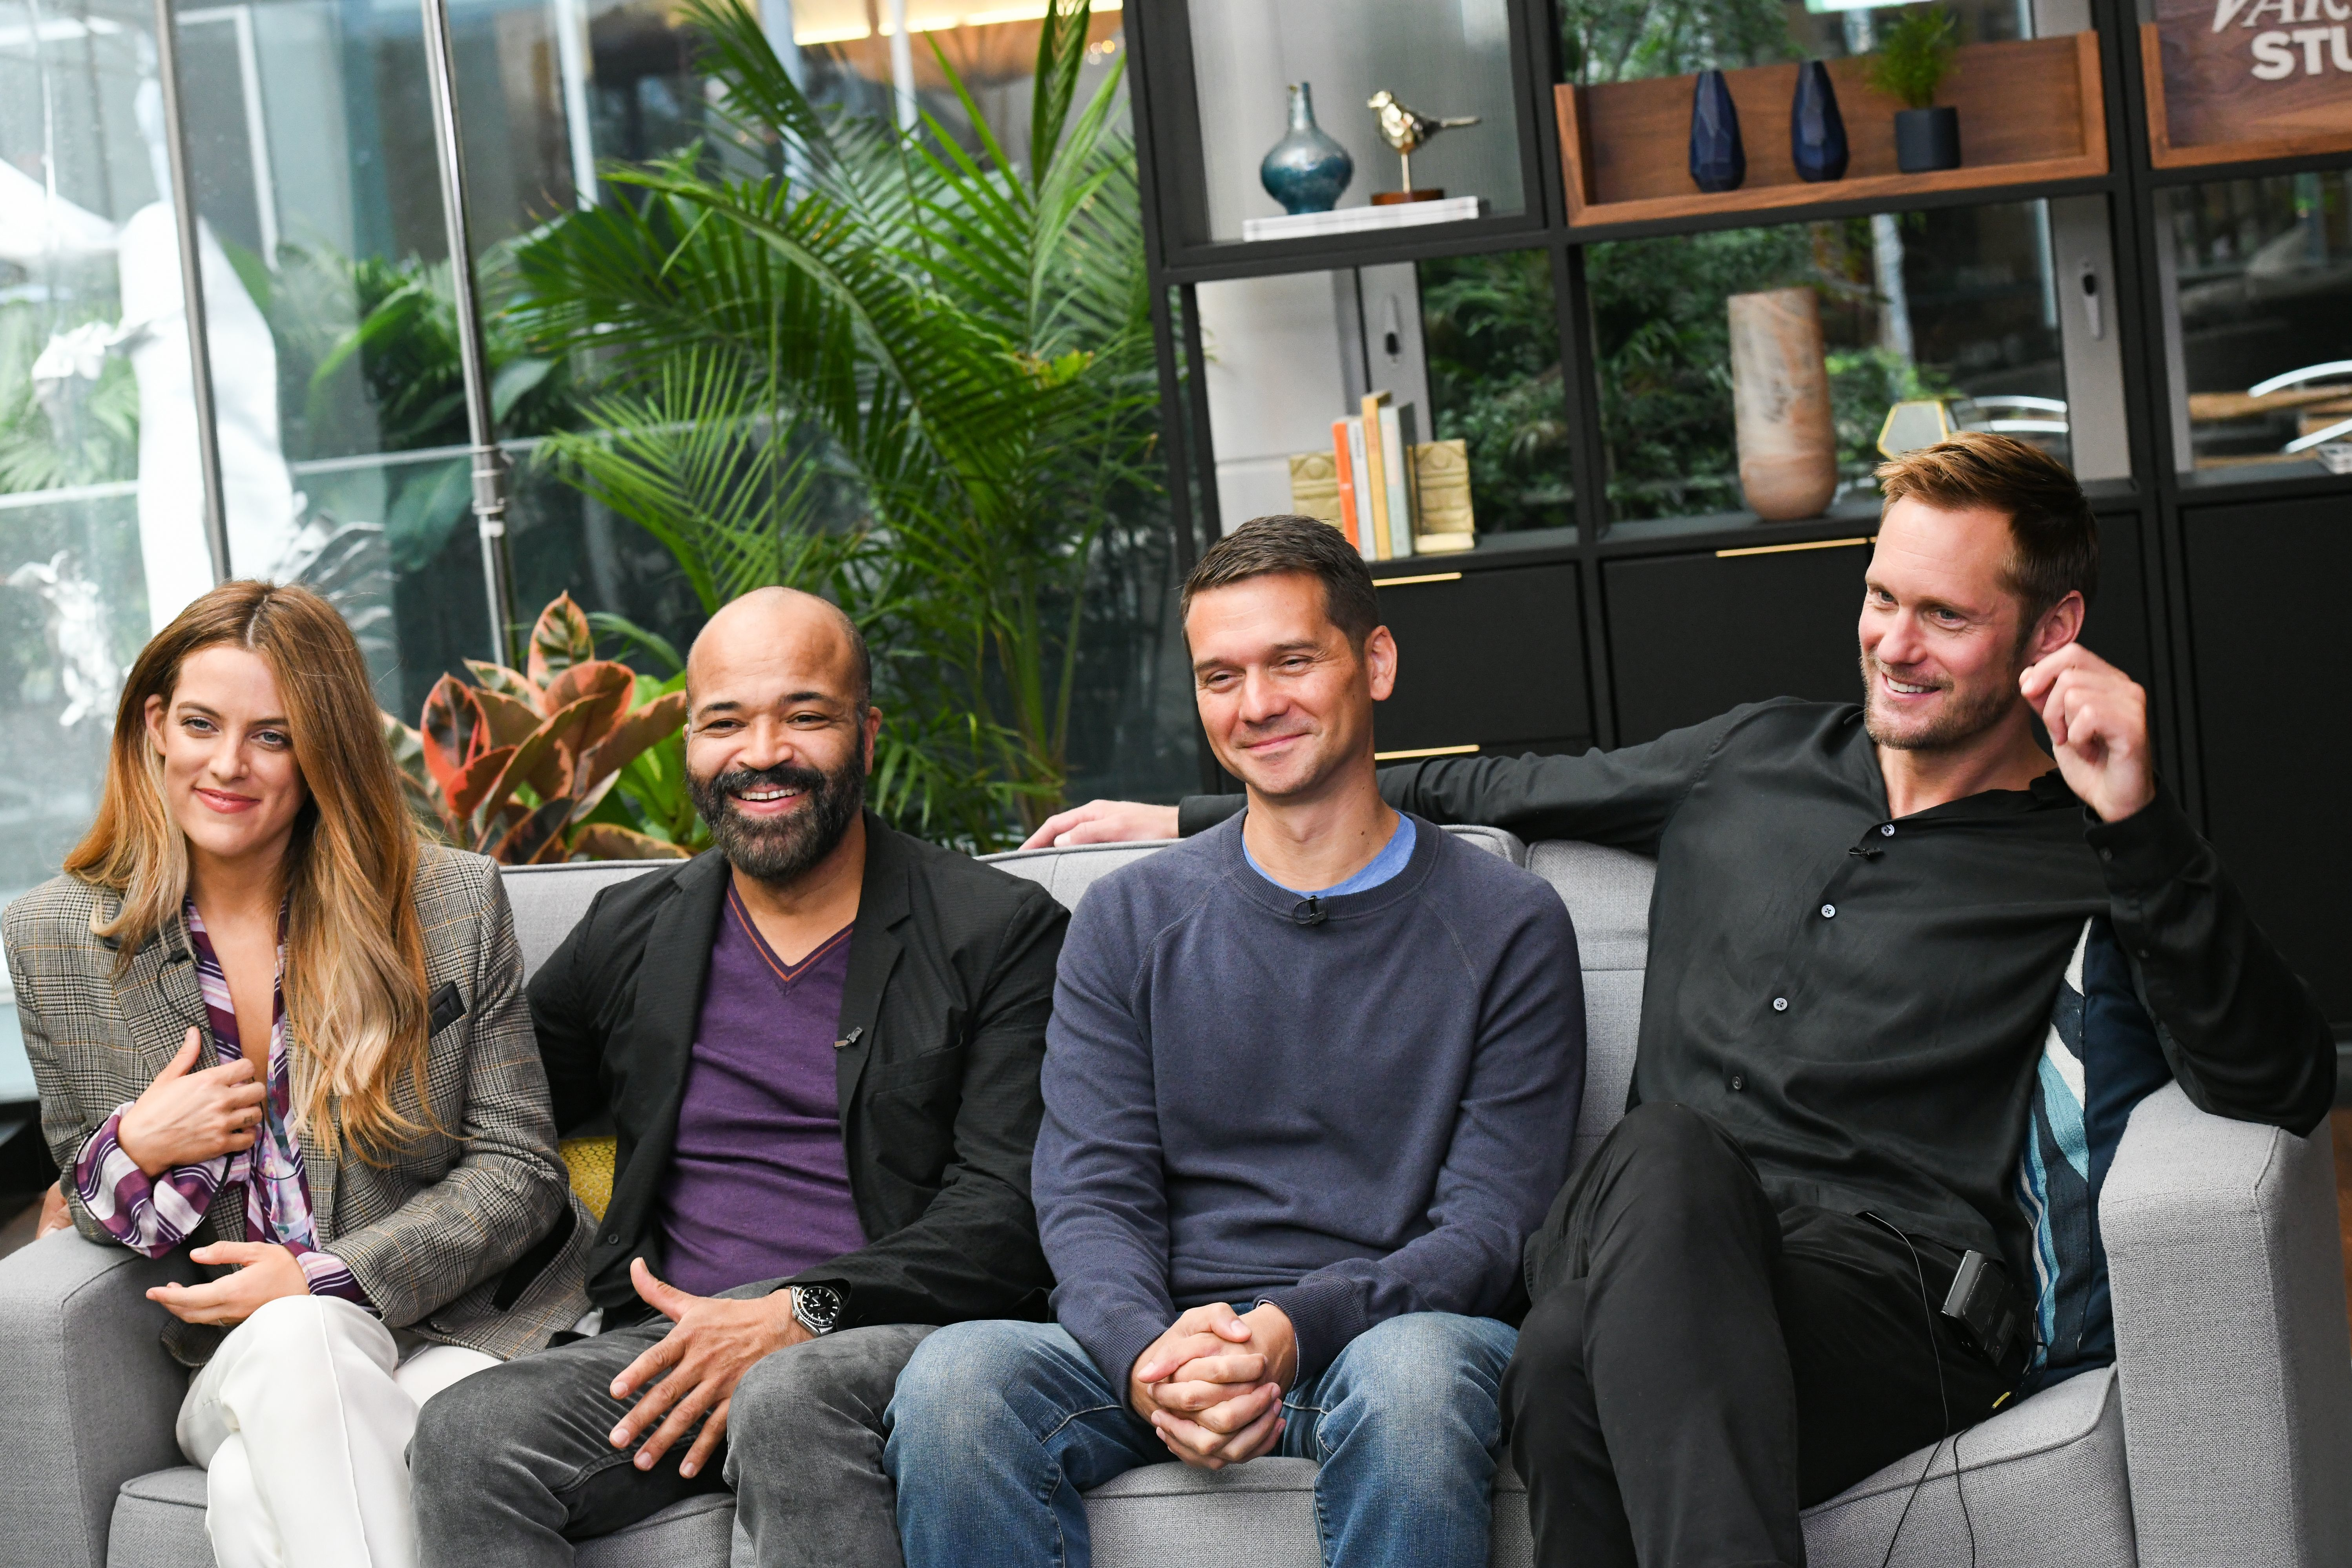 Riley Keough, Jeffrey Wright, Jeremy Saulnier and Alexander Skarsgard hung out at the  Variety Studio in Toronto, Canada n Sept. 10, 2018.